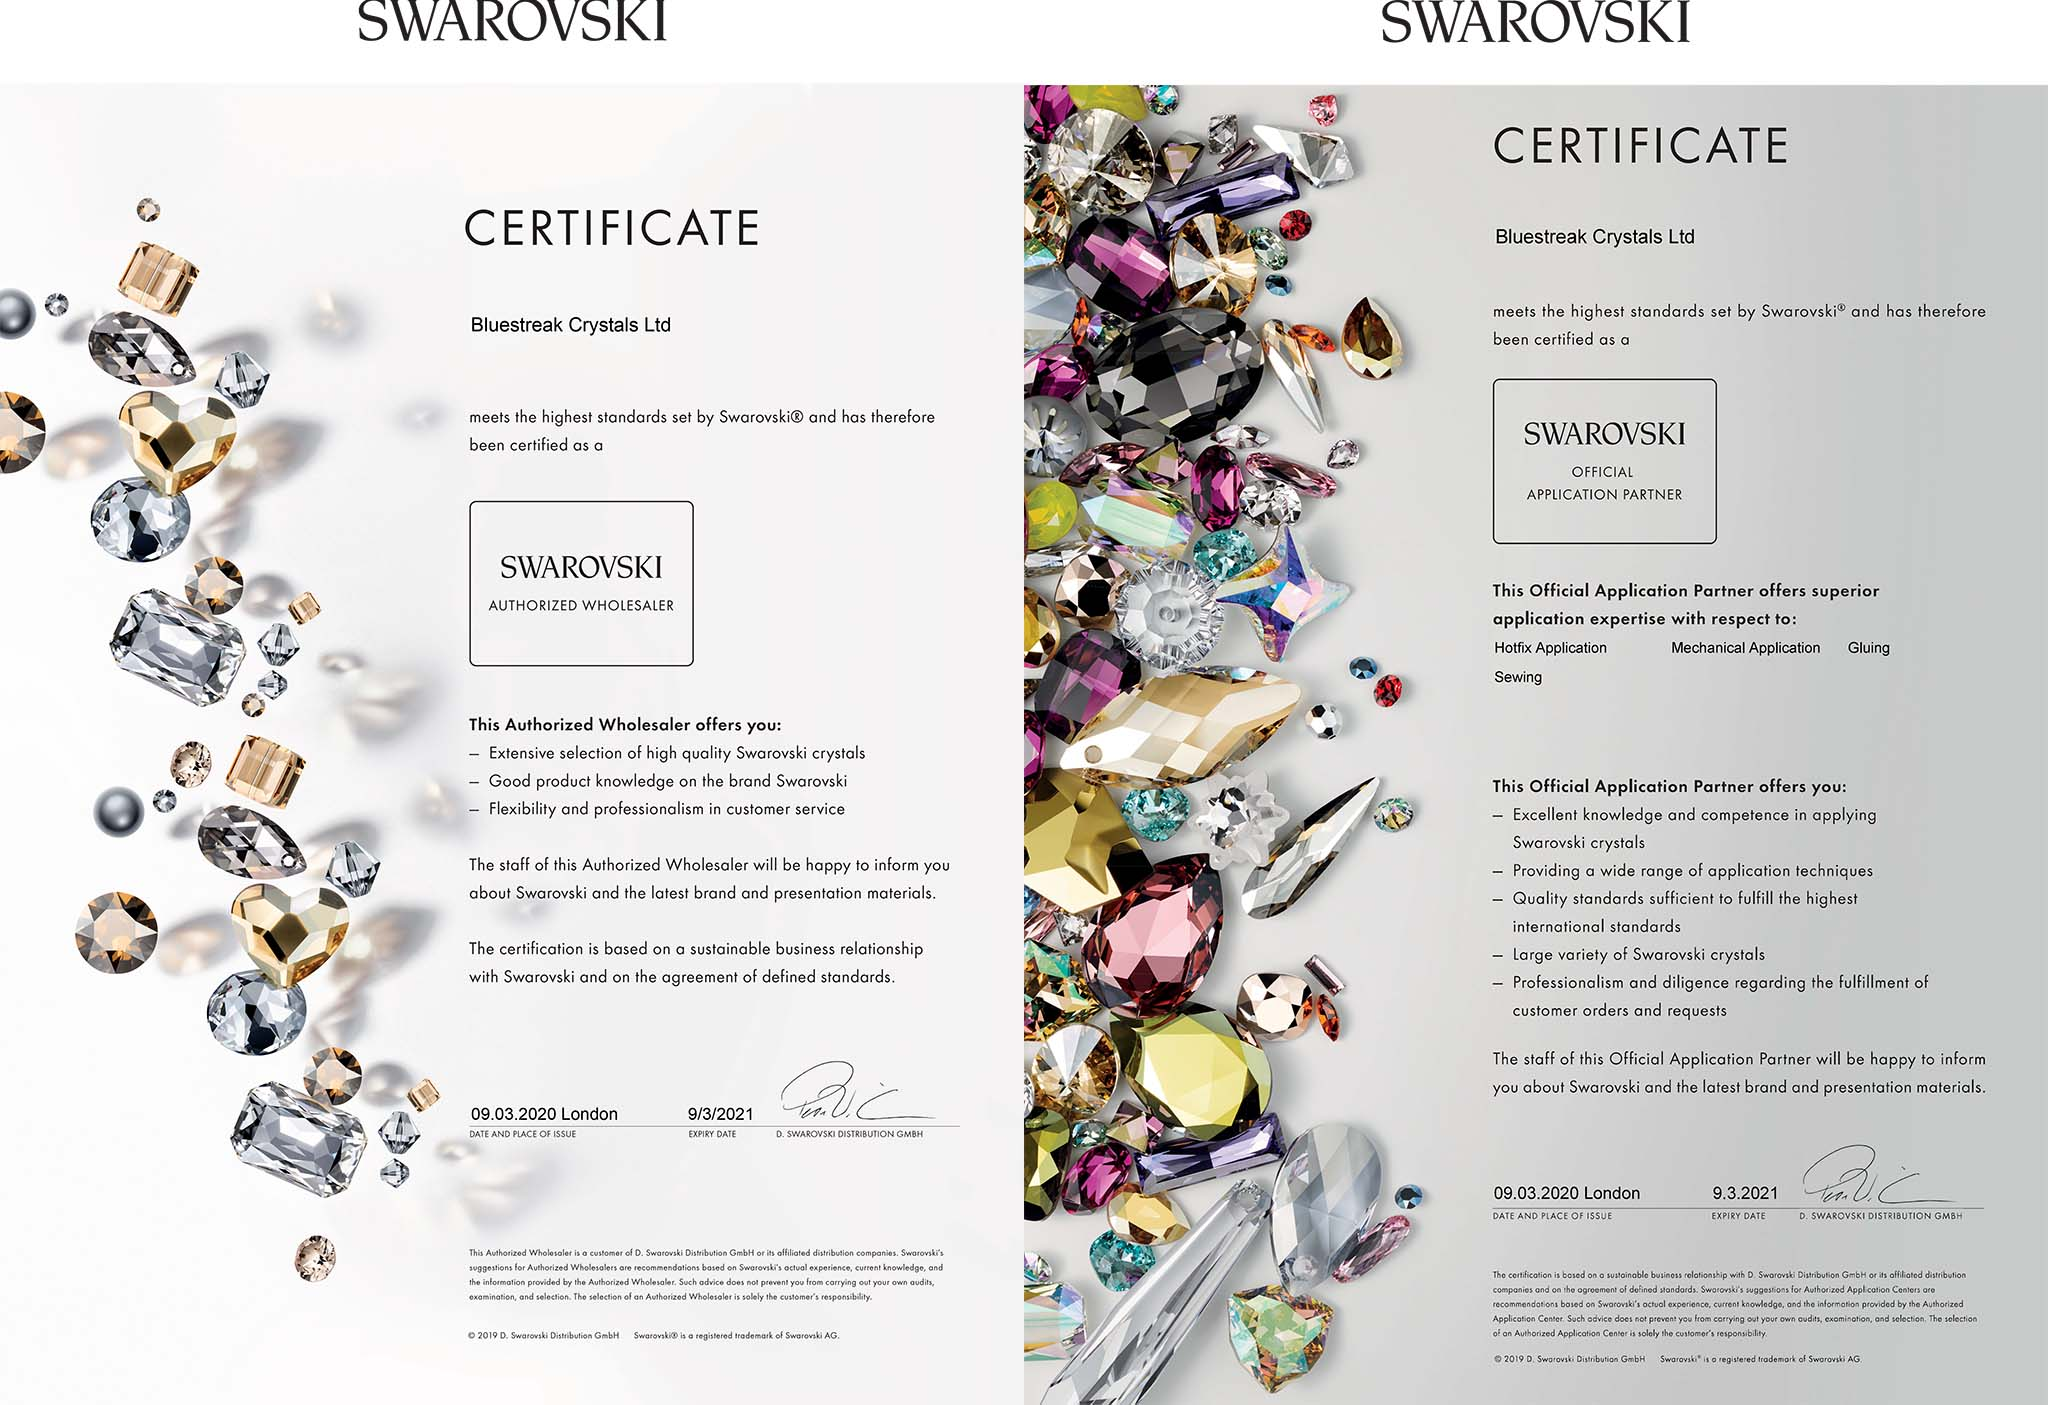 Authorised Swarovski Wholesaler Certificate and Official Application Partner Certificate for Bluestreak Crystals Ltd